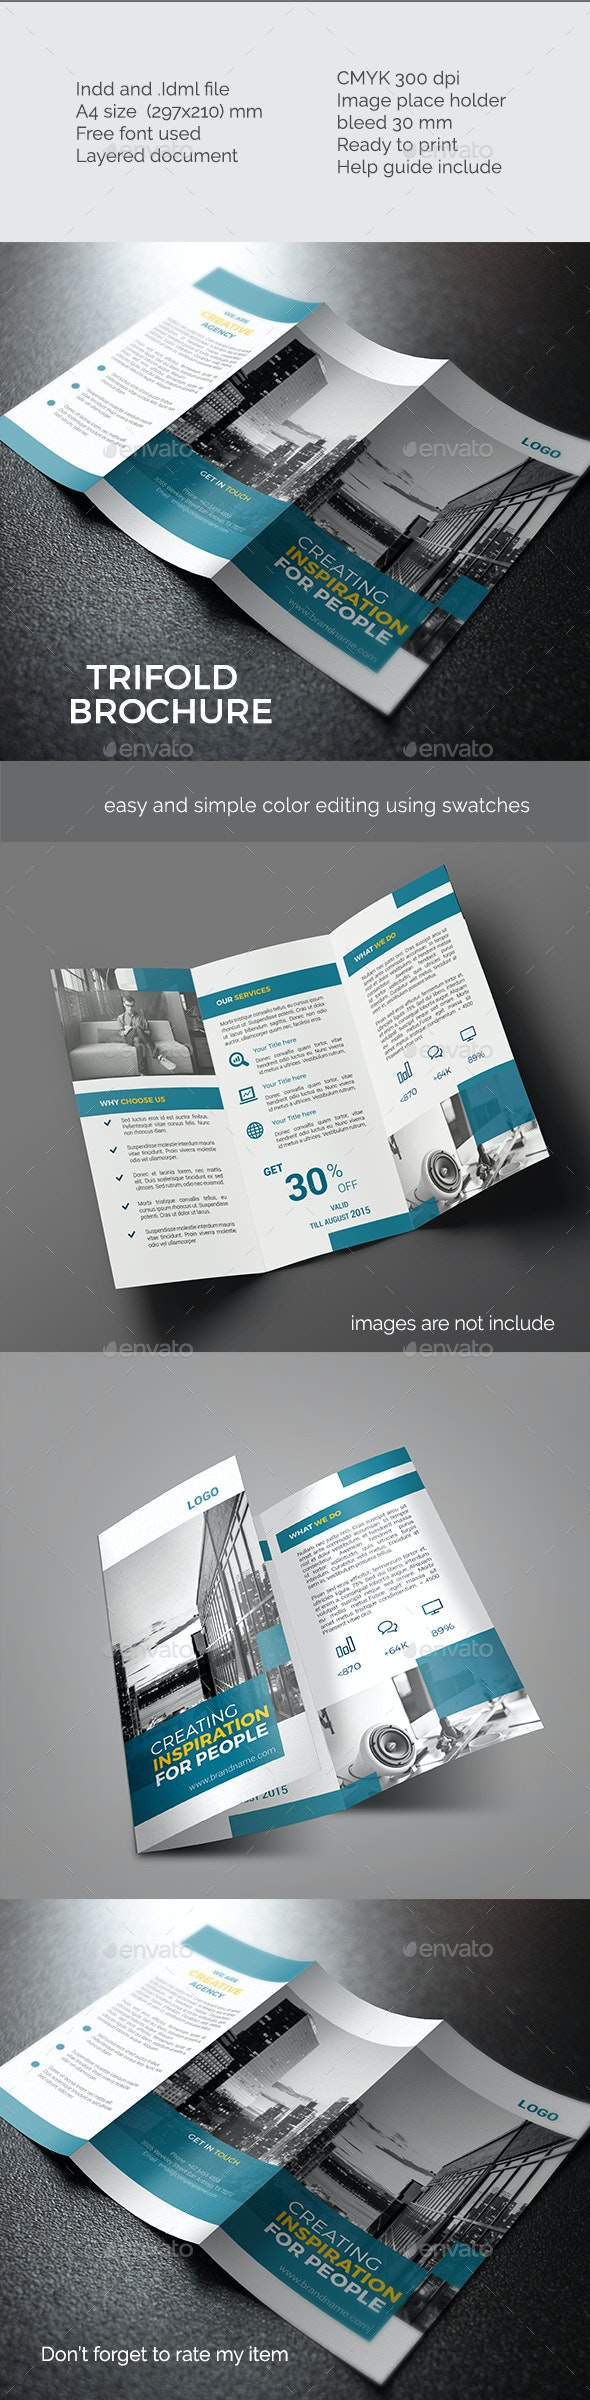 Trifold Brochure Vol 2 - Corporate Brochures